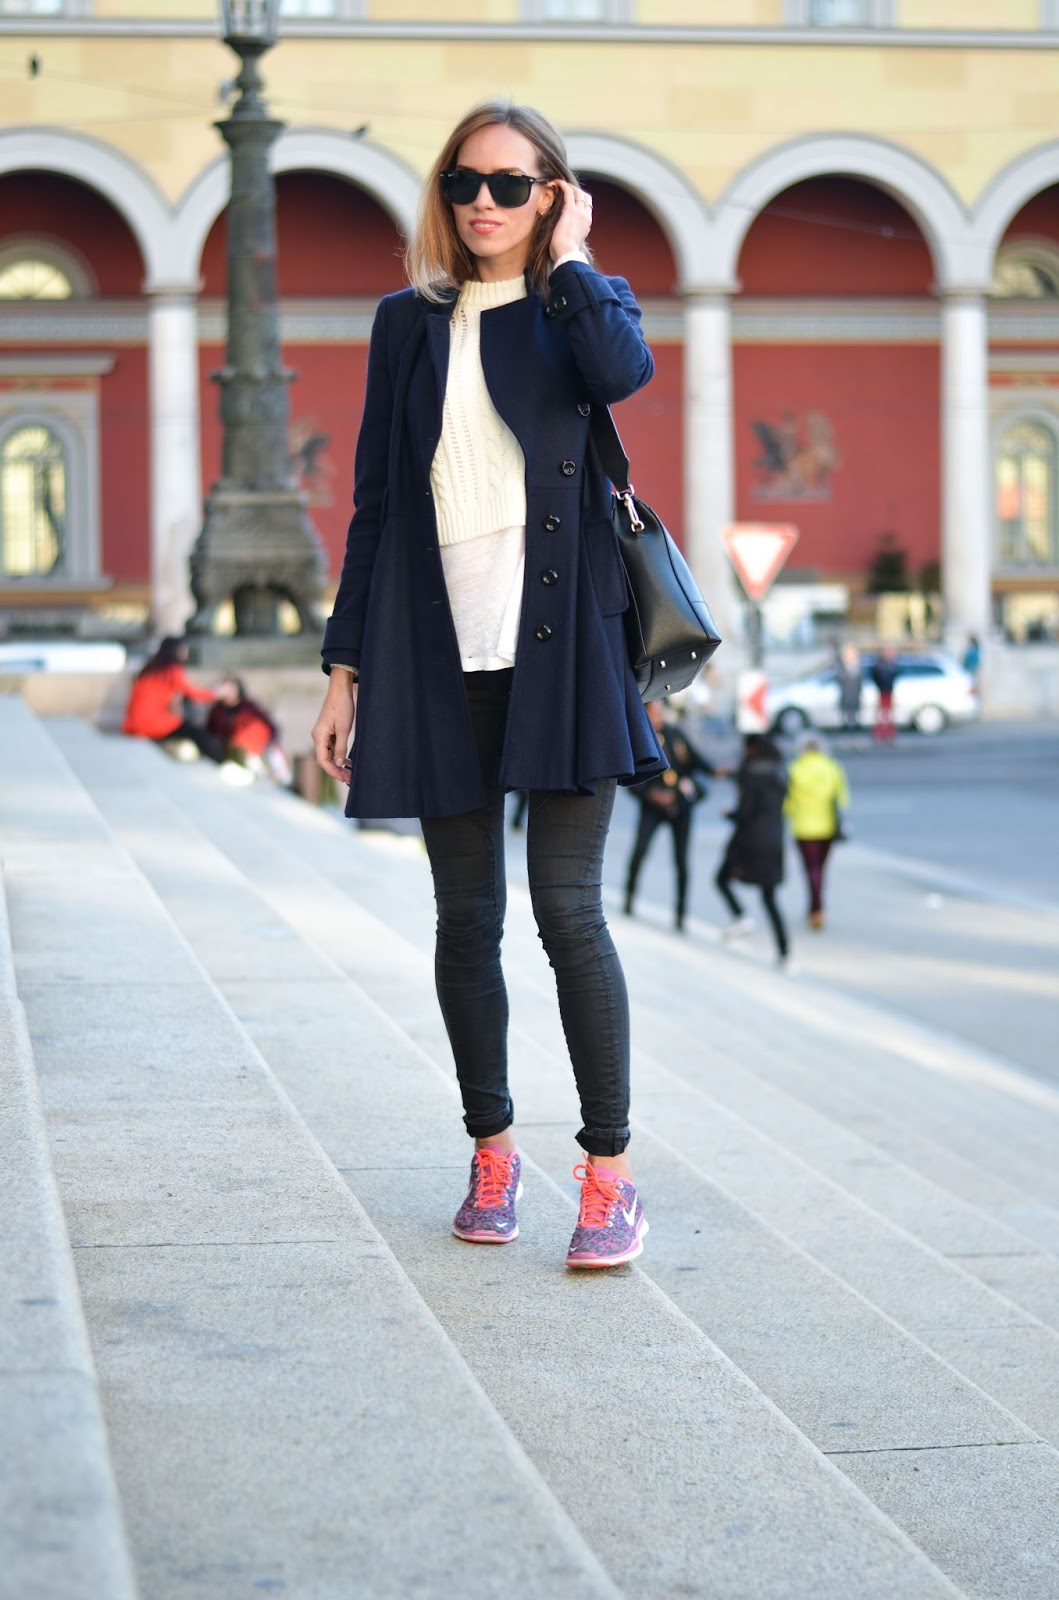 kristjaana mere winter fashion dark blue wool coat white t shirt black jeans pink trainers